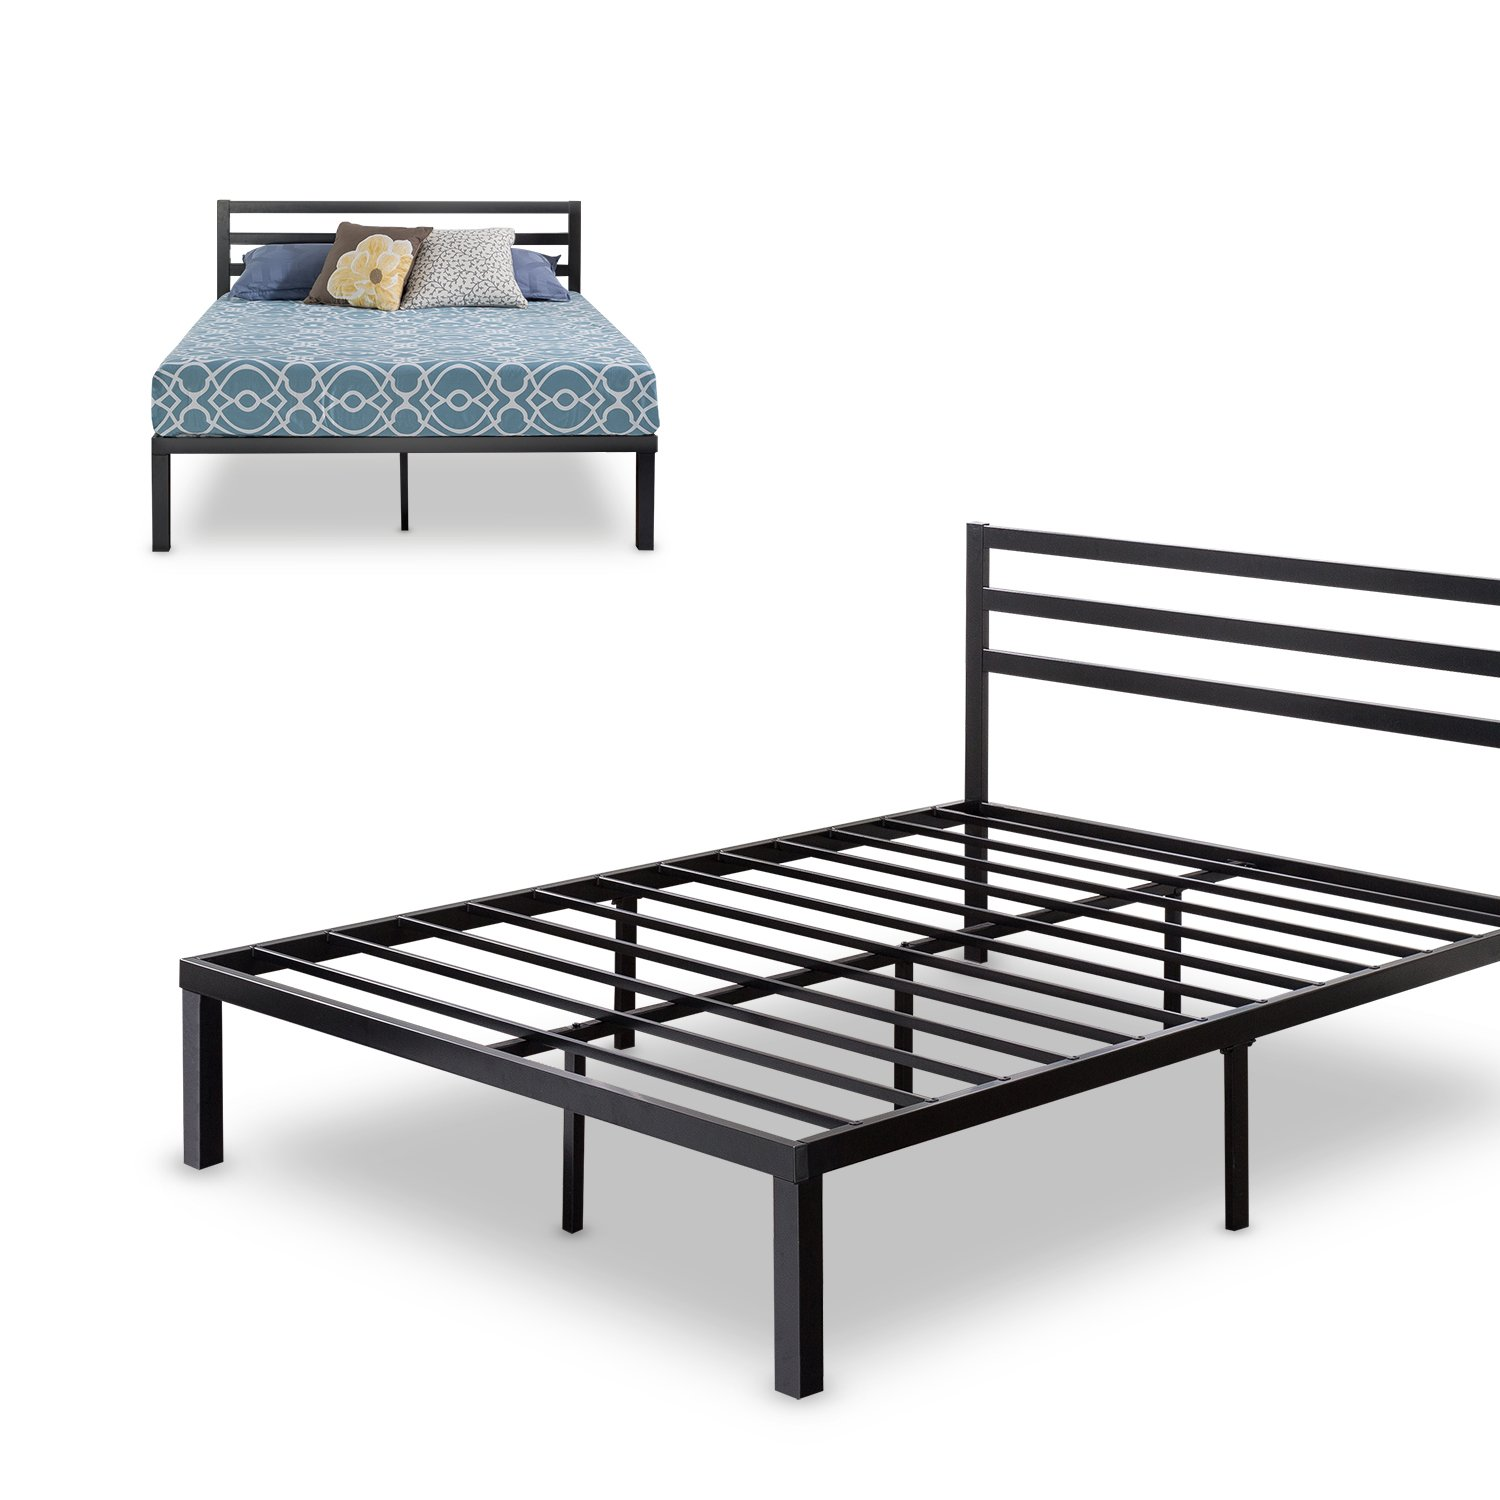 Zinus Quick Lock 14 Inch Metal Platform Bed Frame with Headboard / Mattress